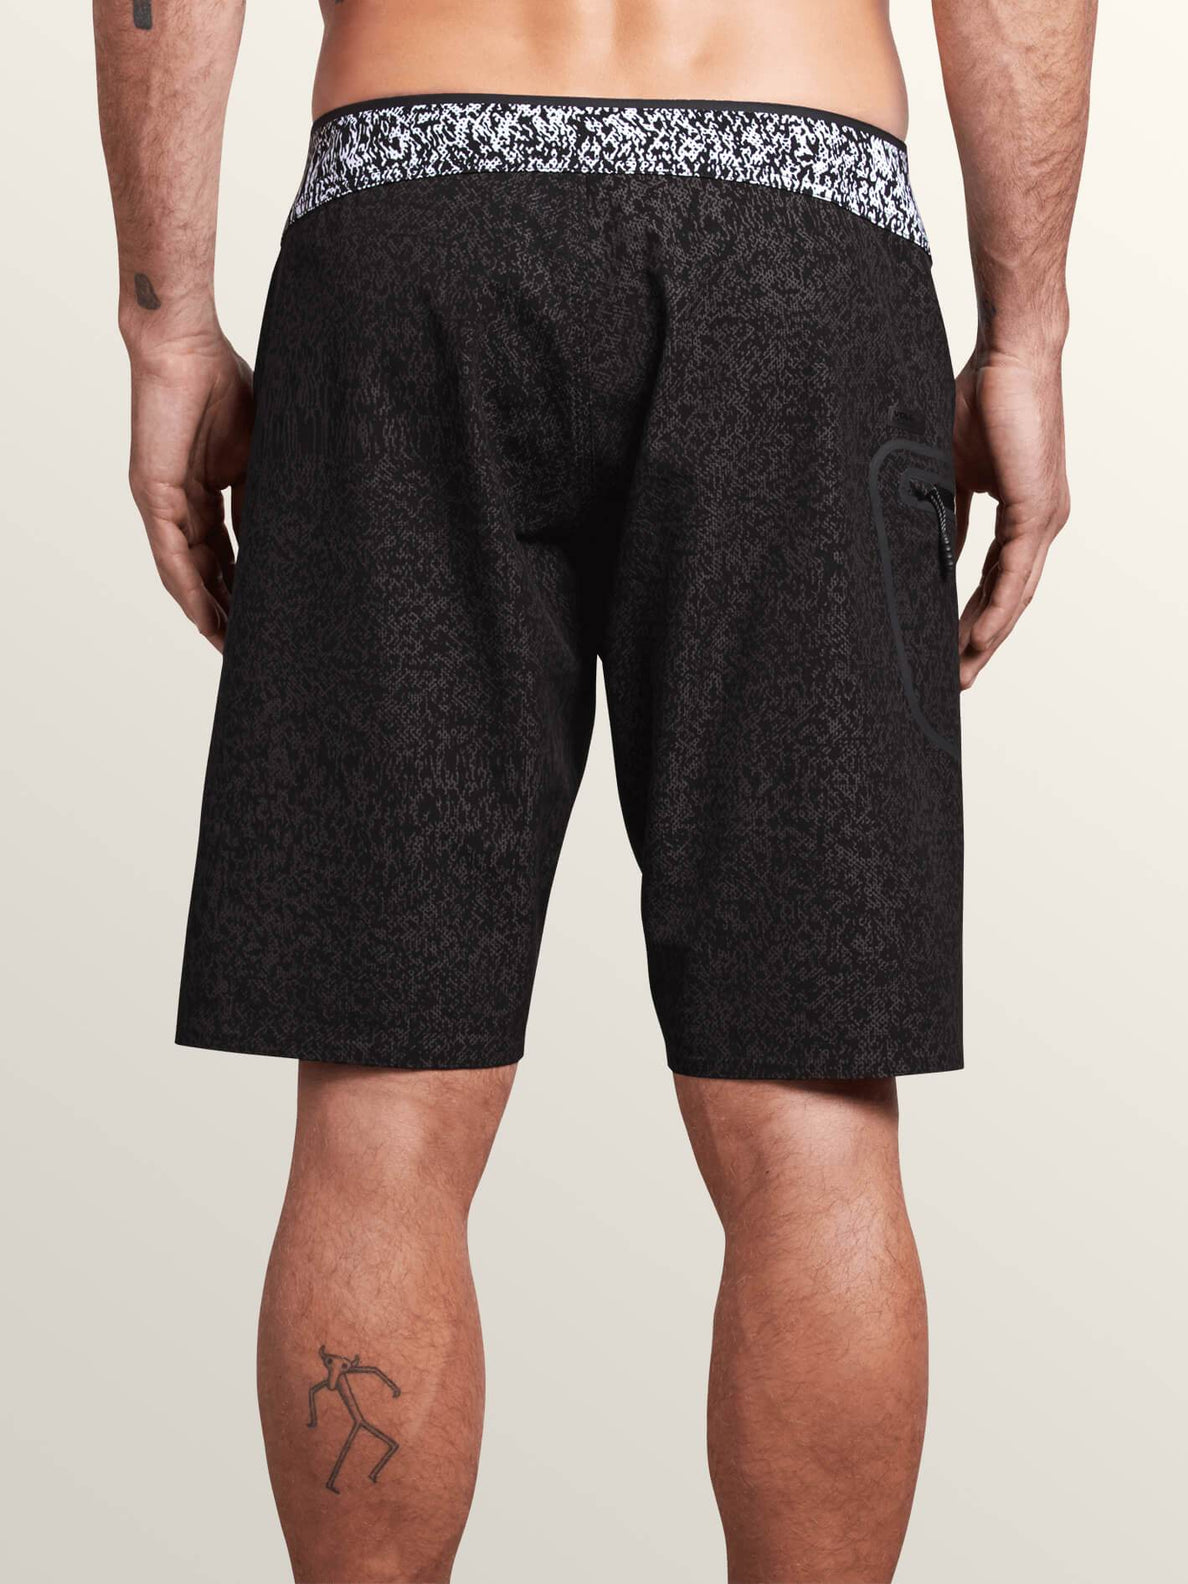 Plasm Plus Mod Boardshorts In Black, Back View